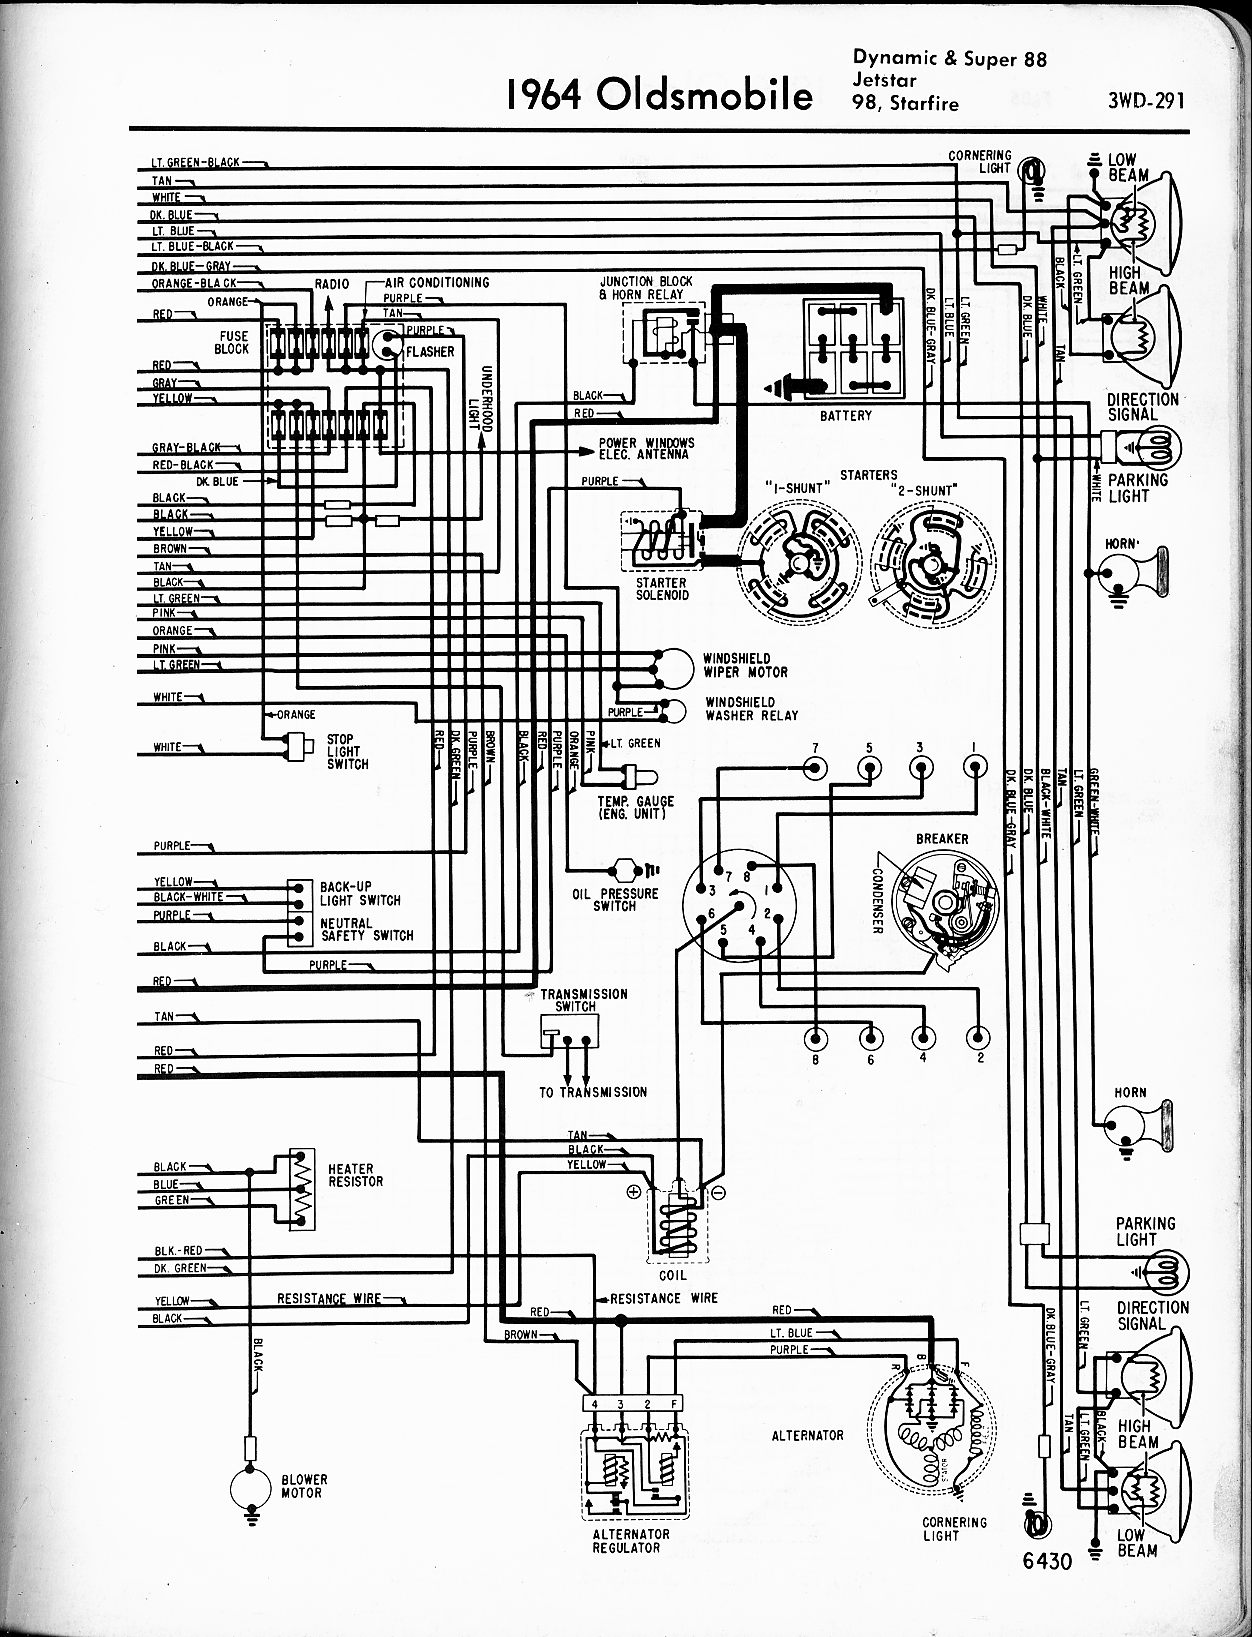 Wiring Diagram Radio For 1988 Oldsmobile, Wiring, Free